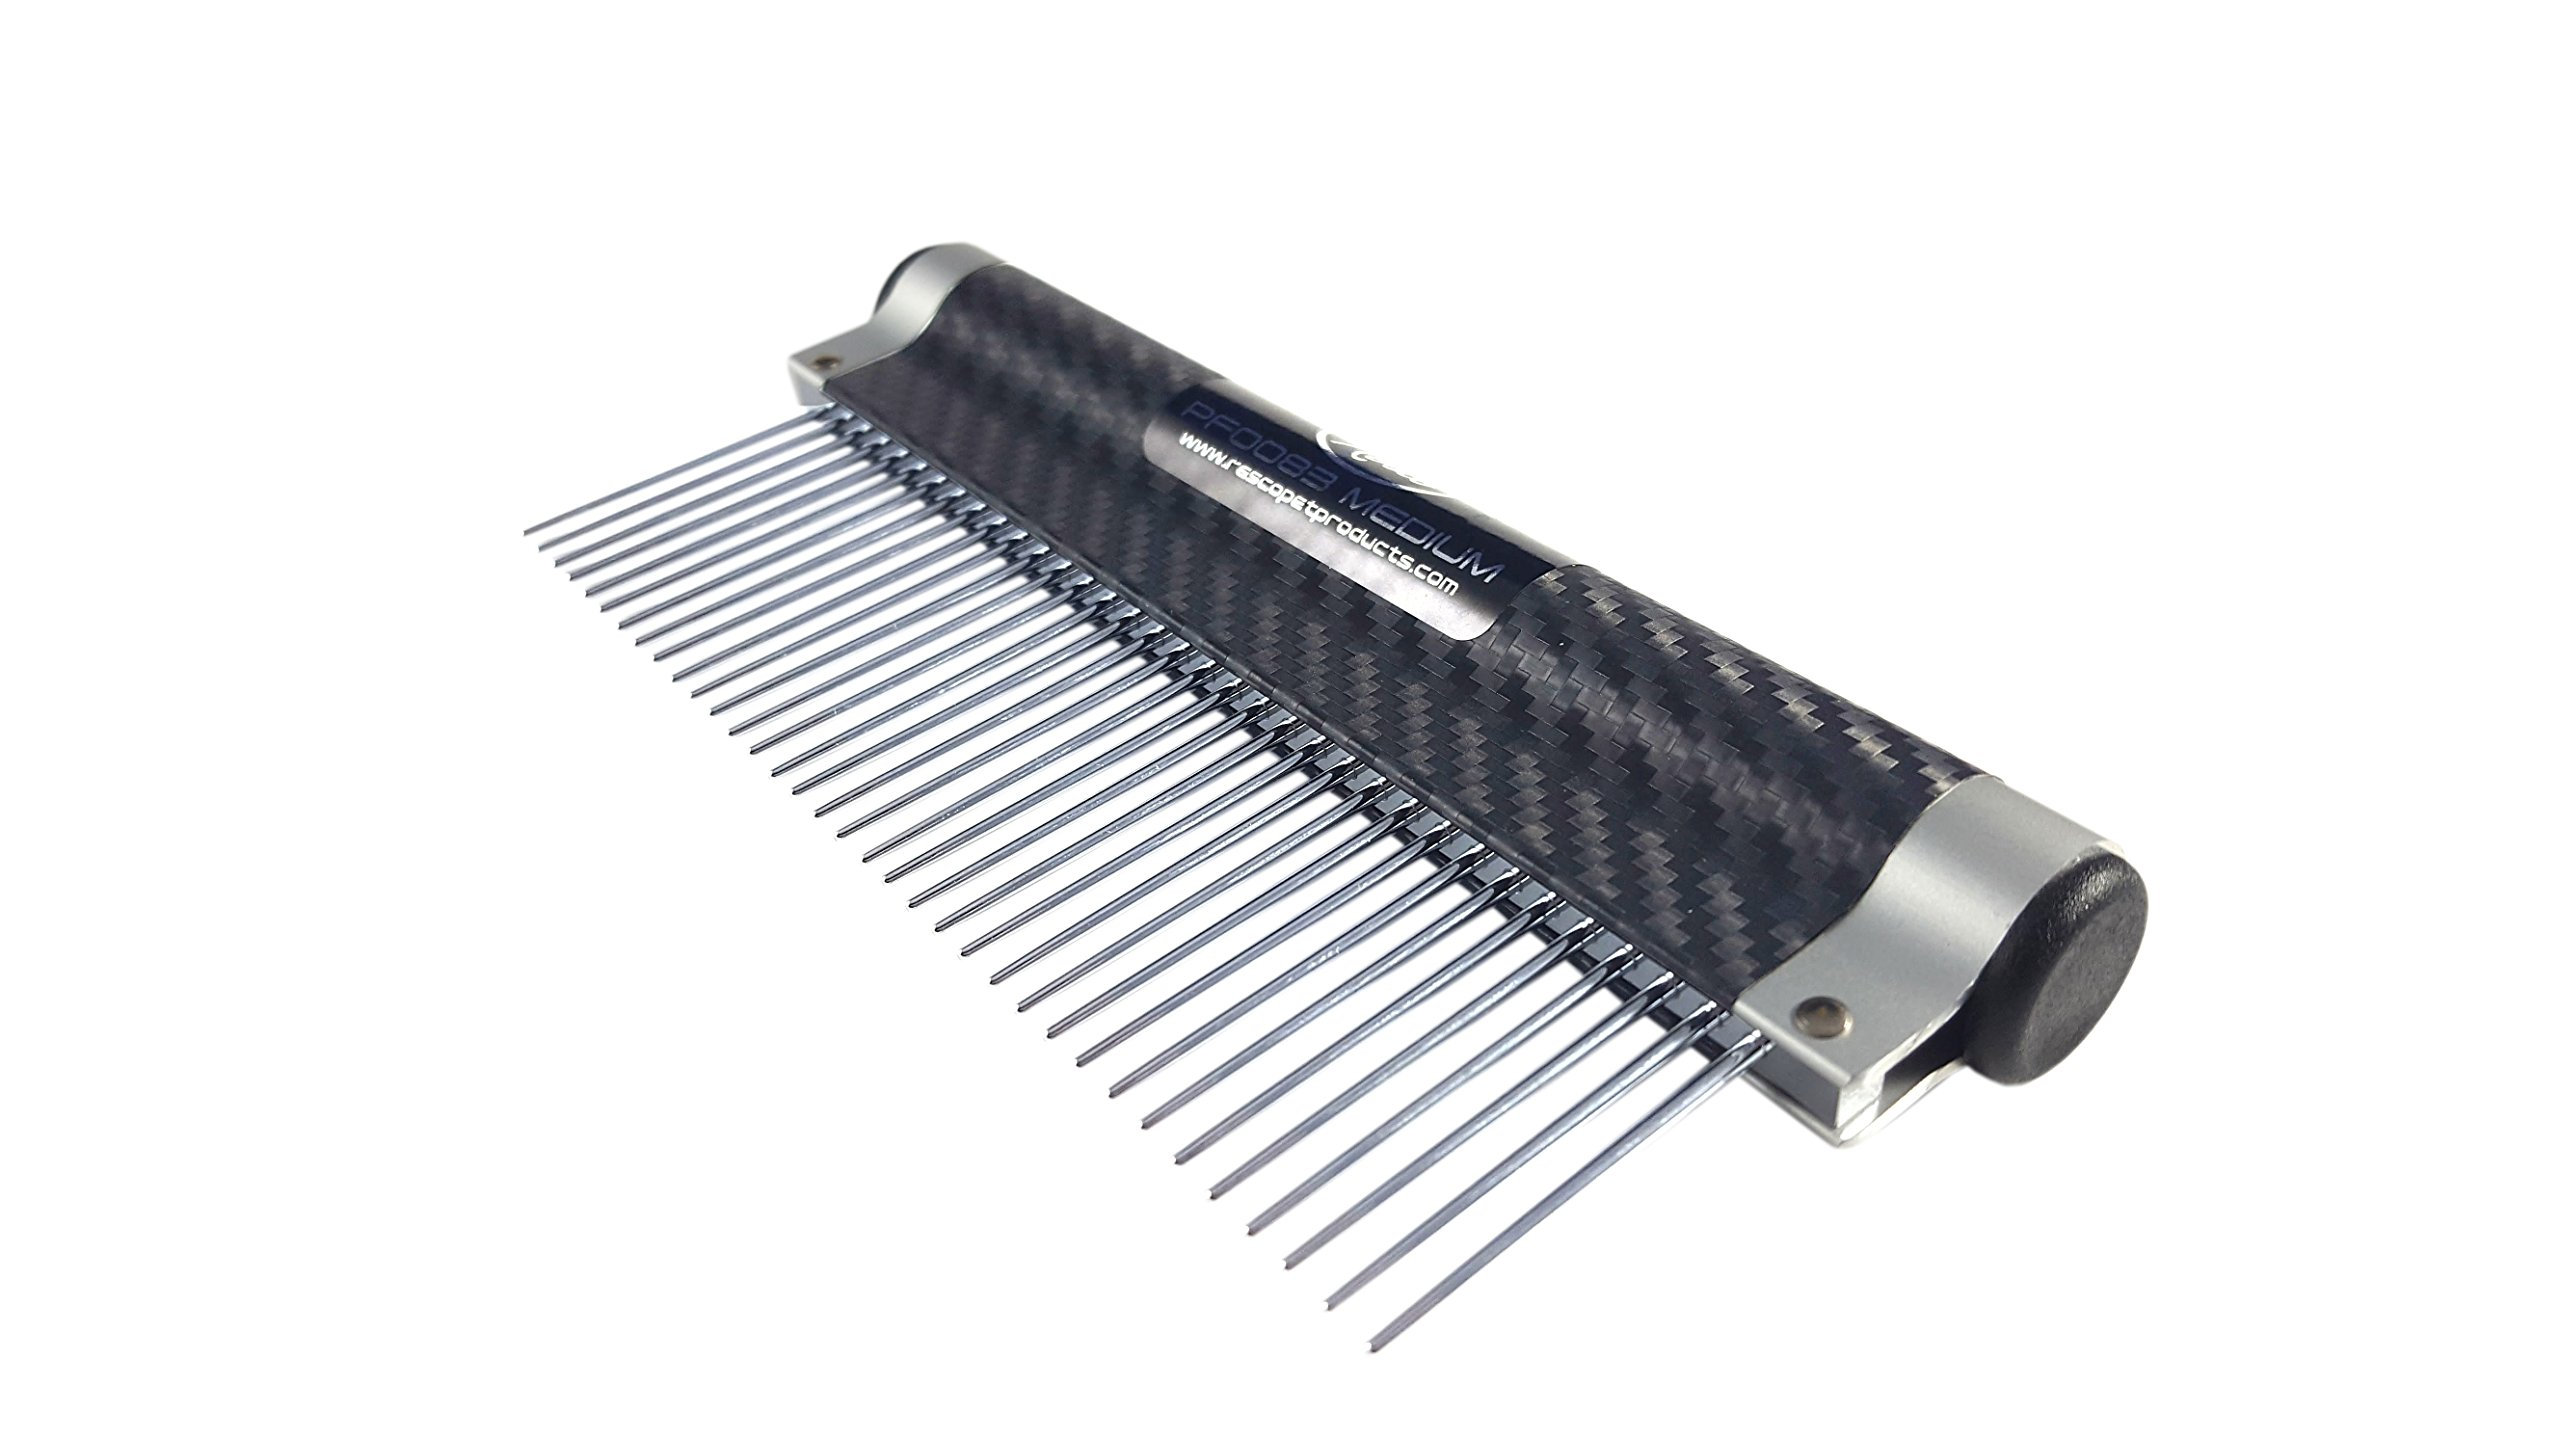 Resco USA-Made Wrap Comb for Pets, Medium, Carbon Fiber by Resco (Image #2)